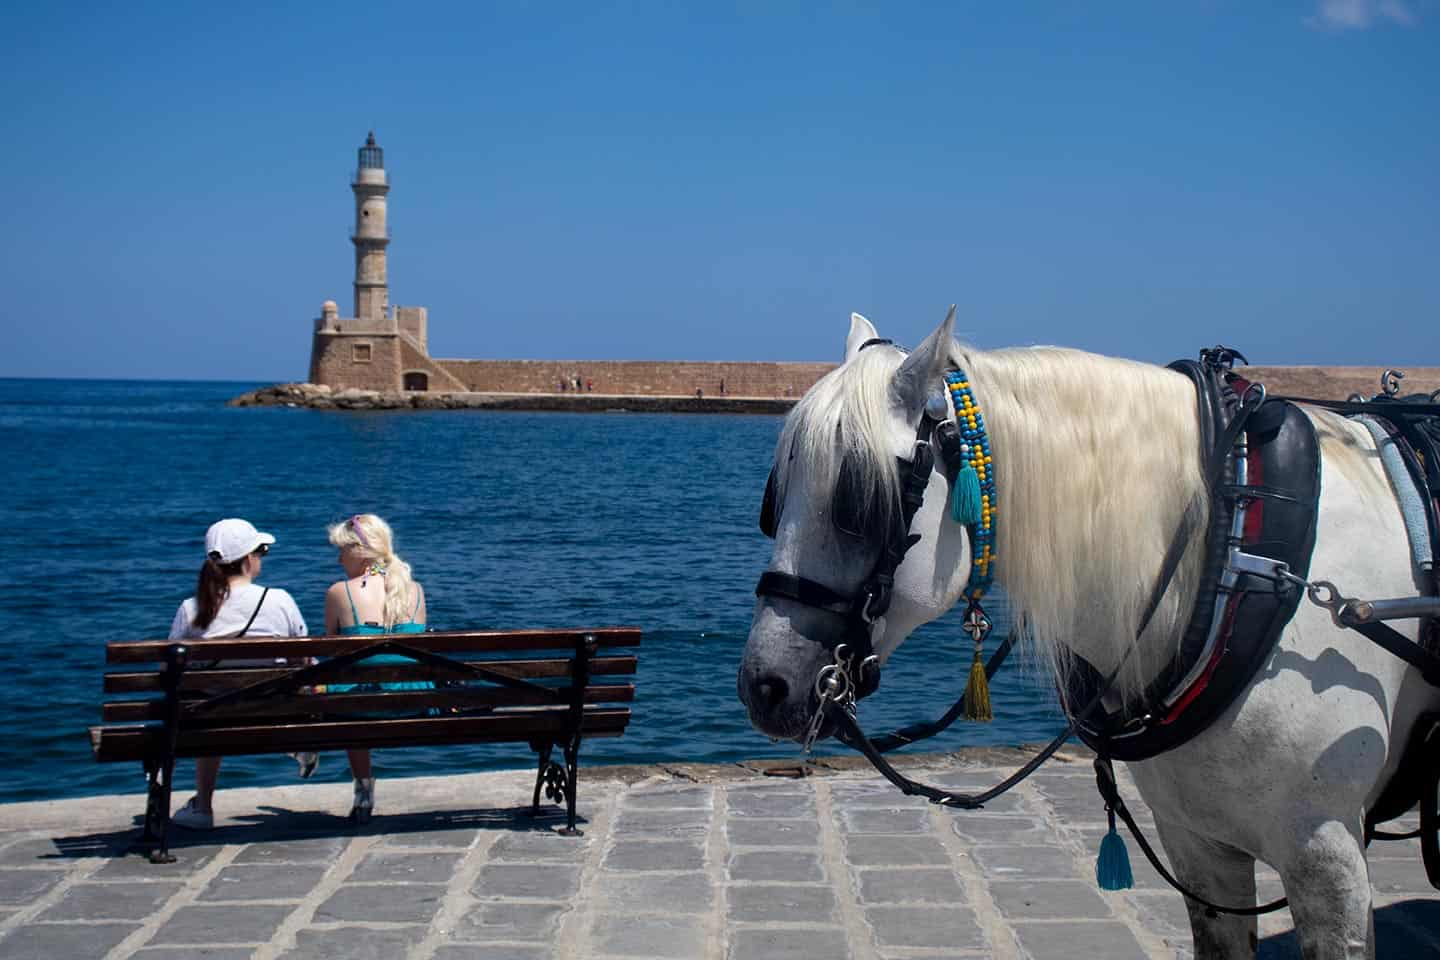 Image of a horse at Chania harbour